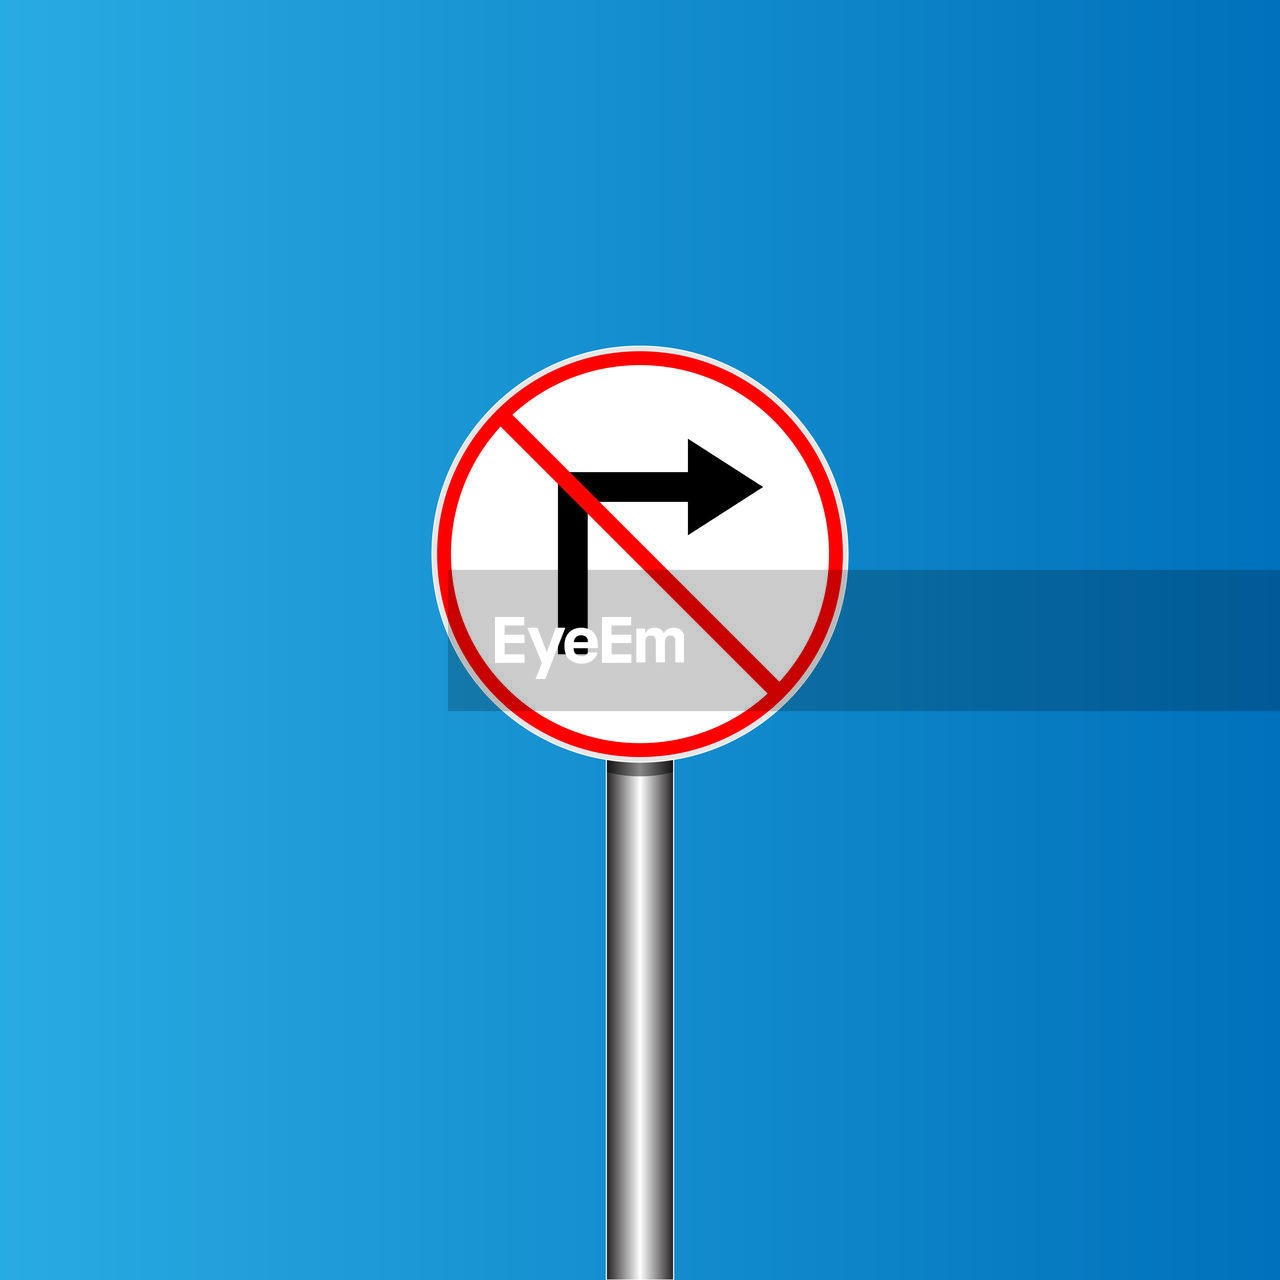 sign, communication, road sign, blue, red, circle, road, guidance, geometric shape, warning sign, shape, symbol, forbidden, information, no people, information sign, day, copy space, design, do not enter sign, road warning sign, warning symbol, blue background